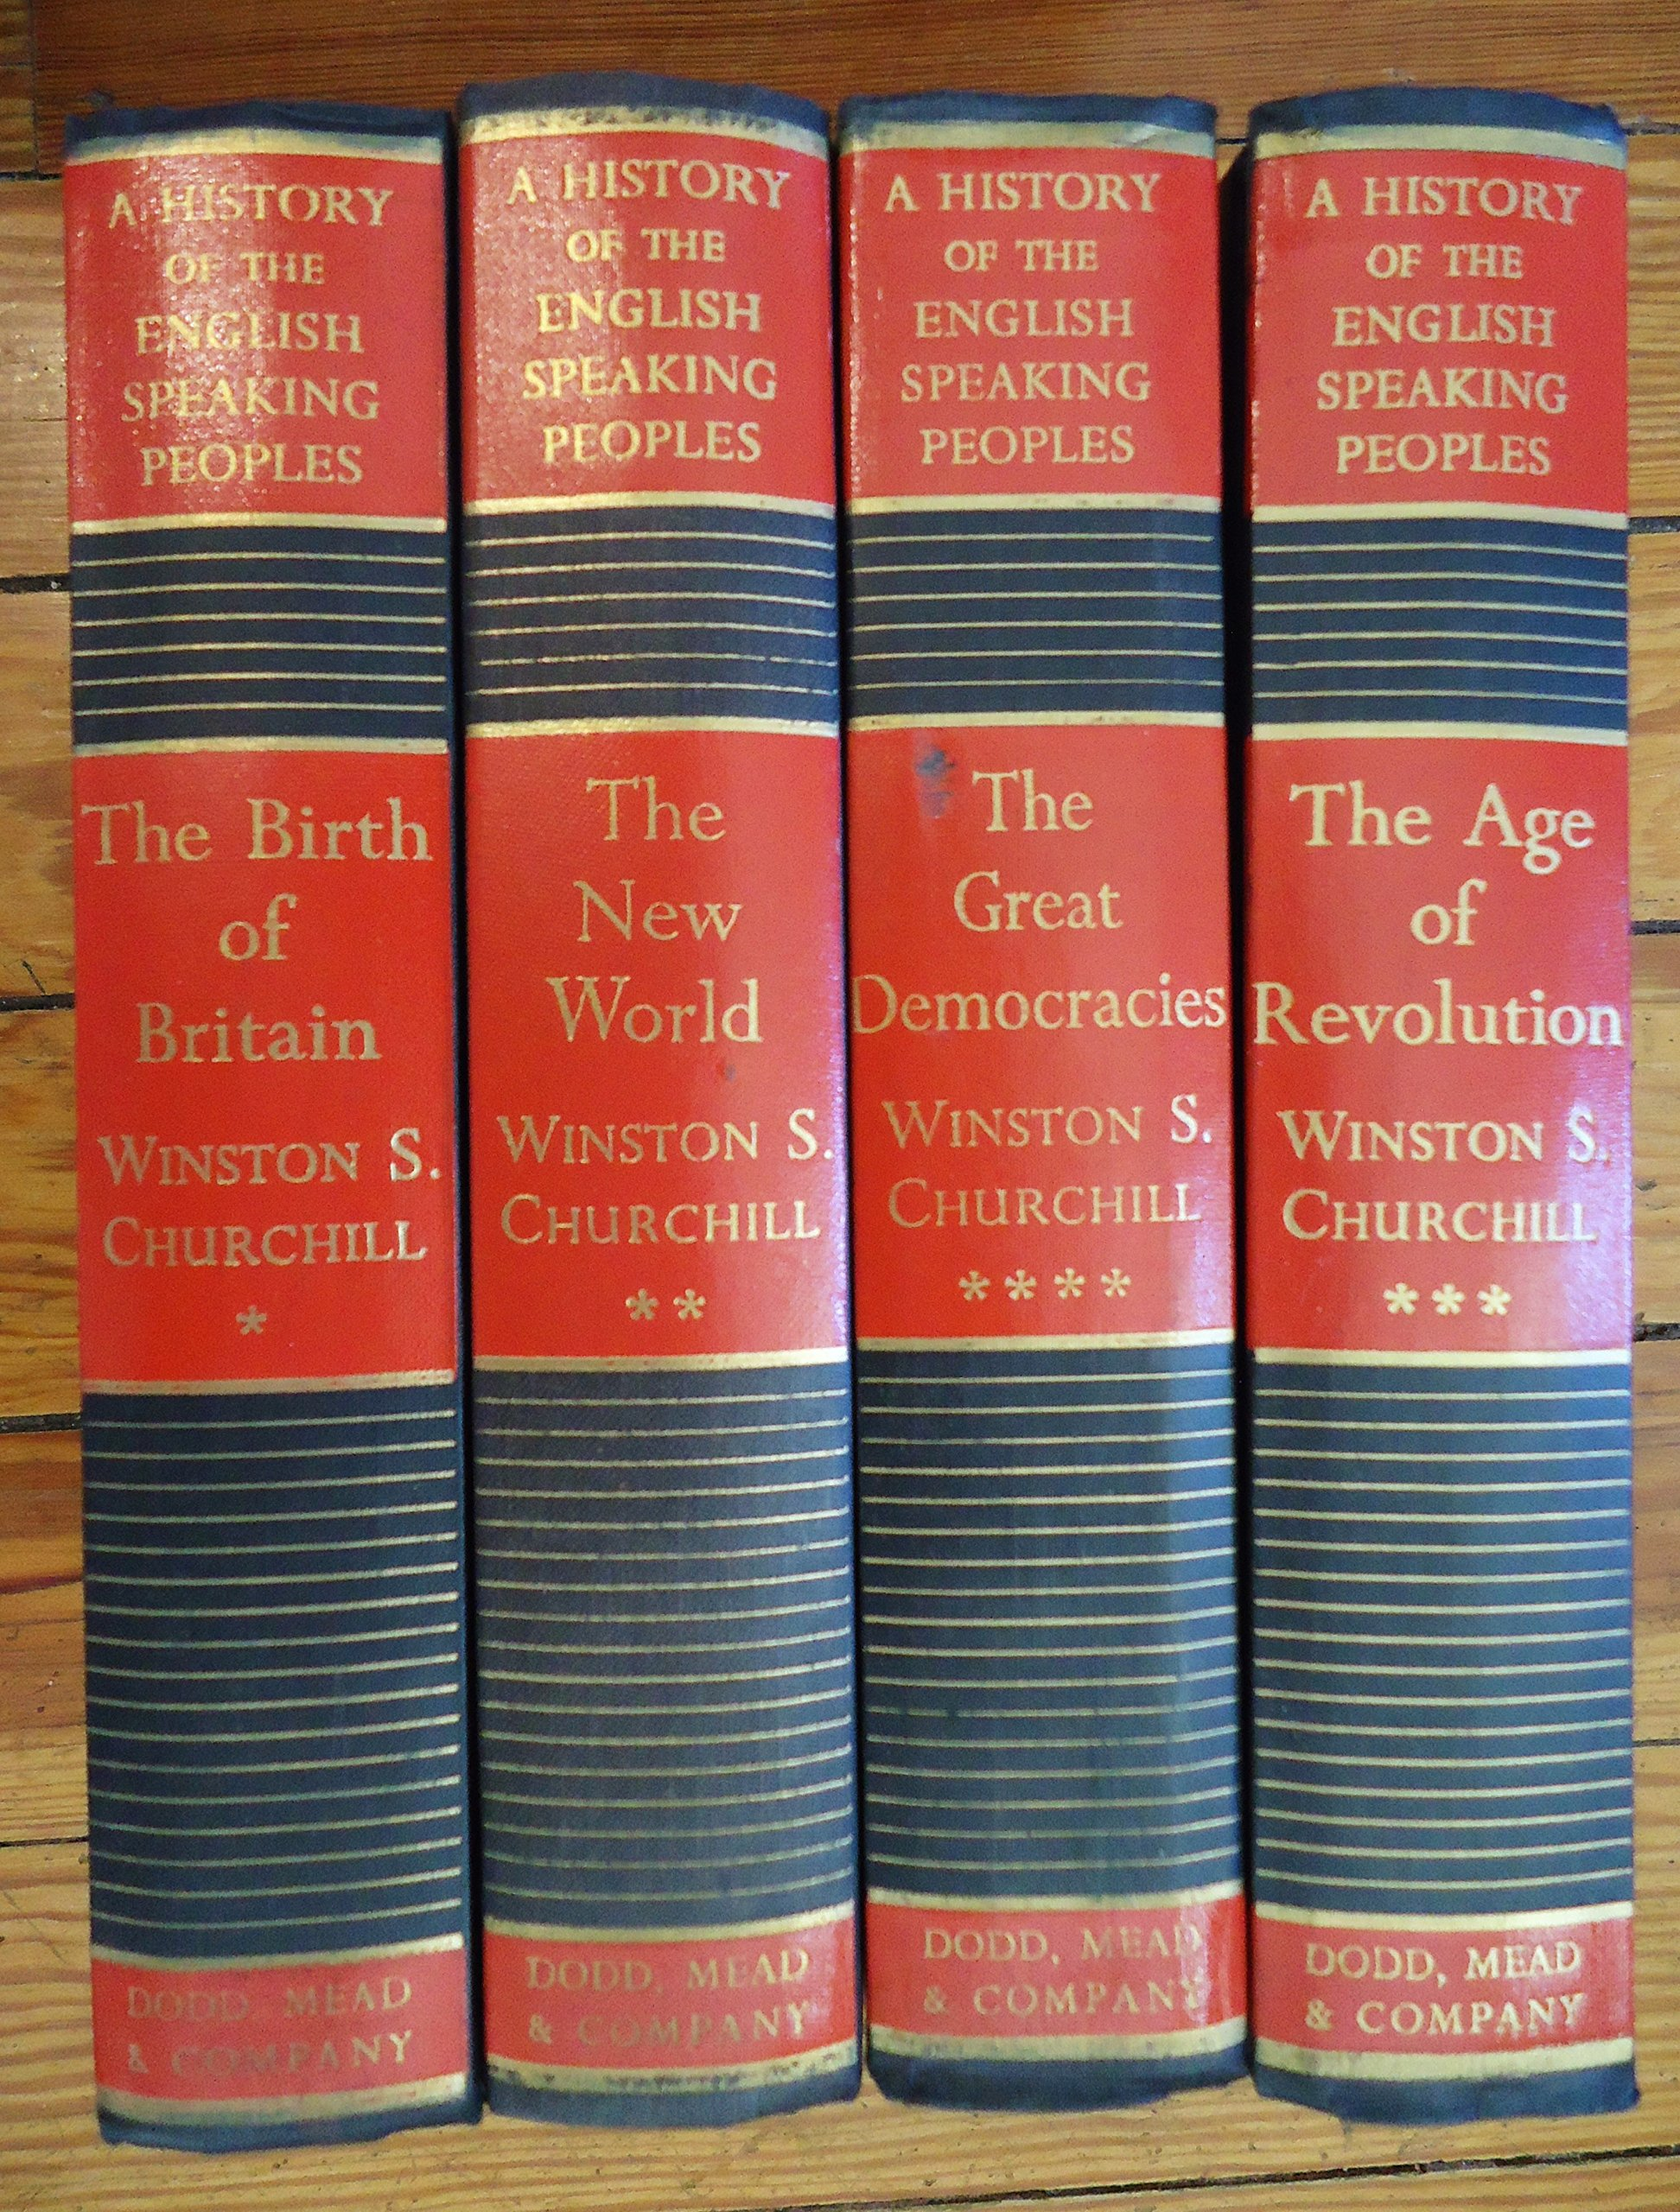 a-history-of-the-english-speaking-peoples-four-volume-set-comprising-the-birth-of-britain-the-new-world-the-age-of-revolution-and-the-great-democracies